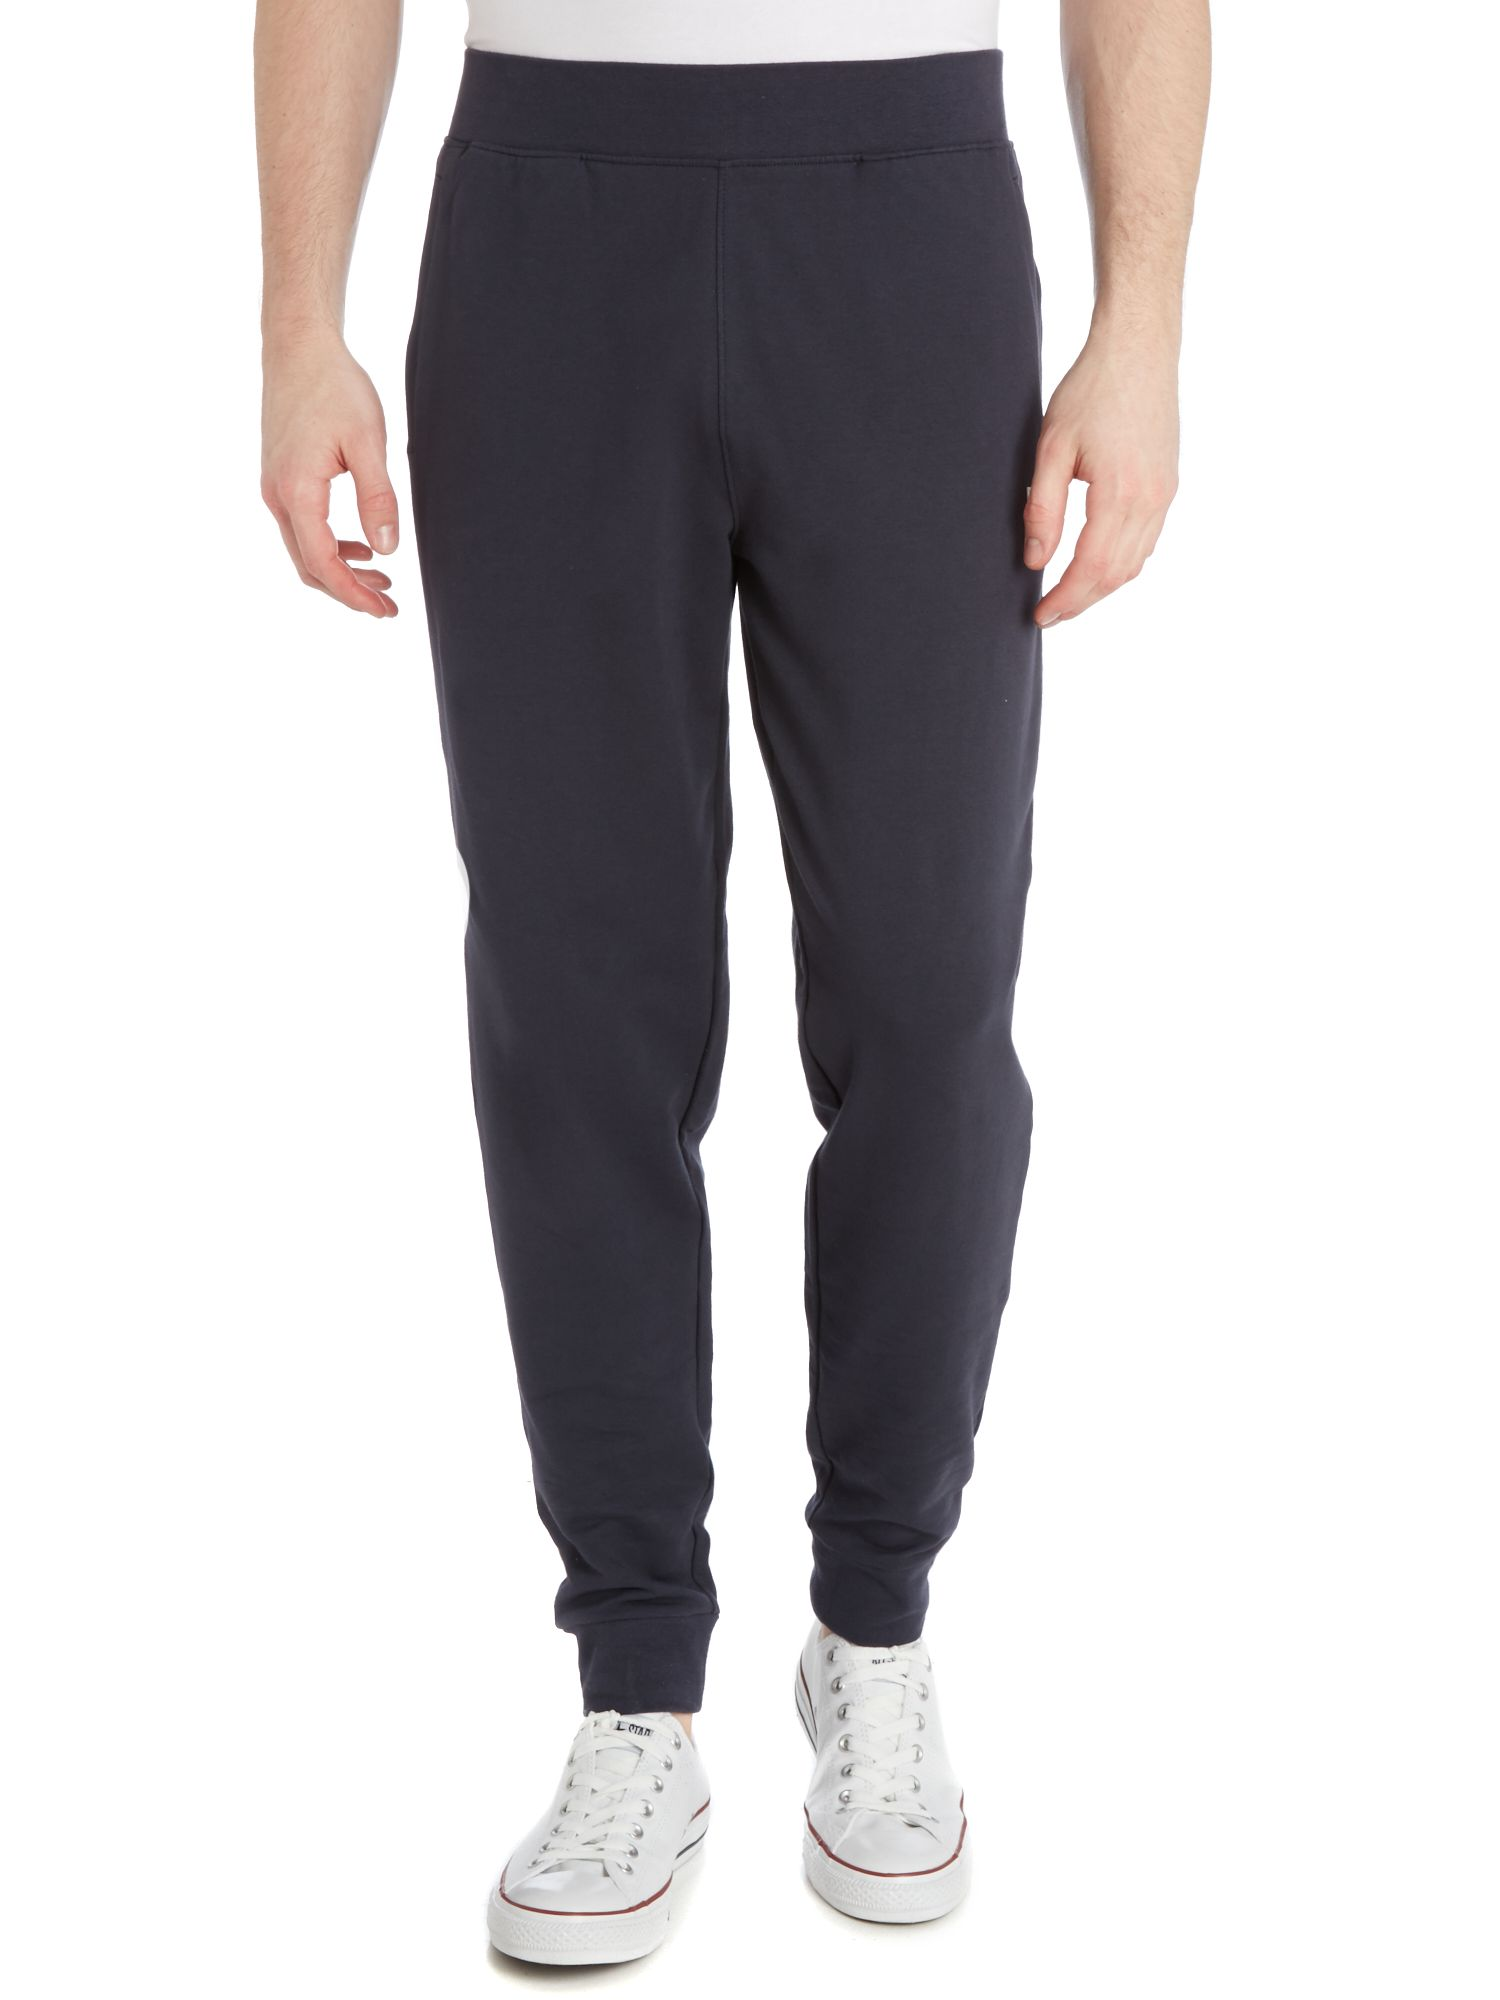 Train evolution small logo cuffed sweat pant